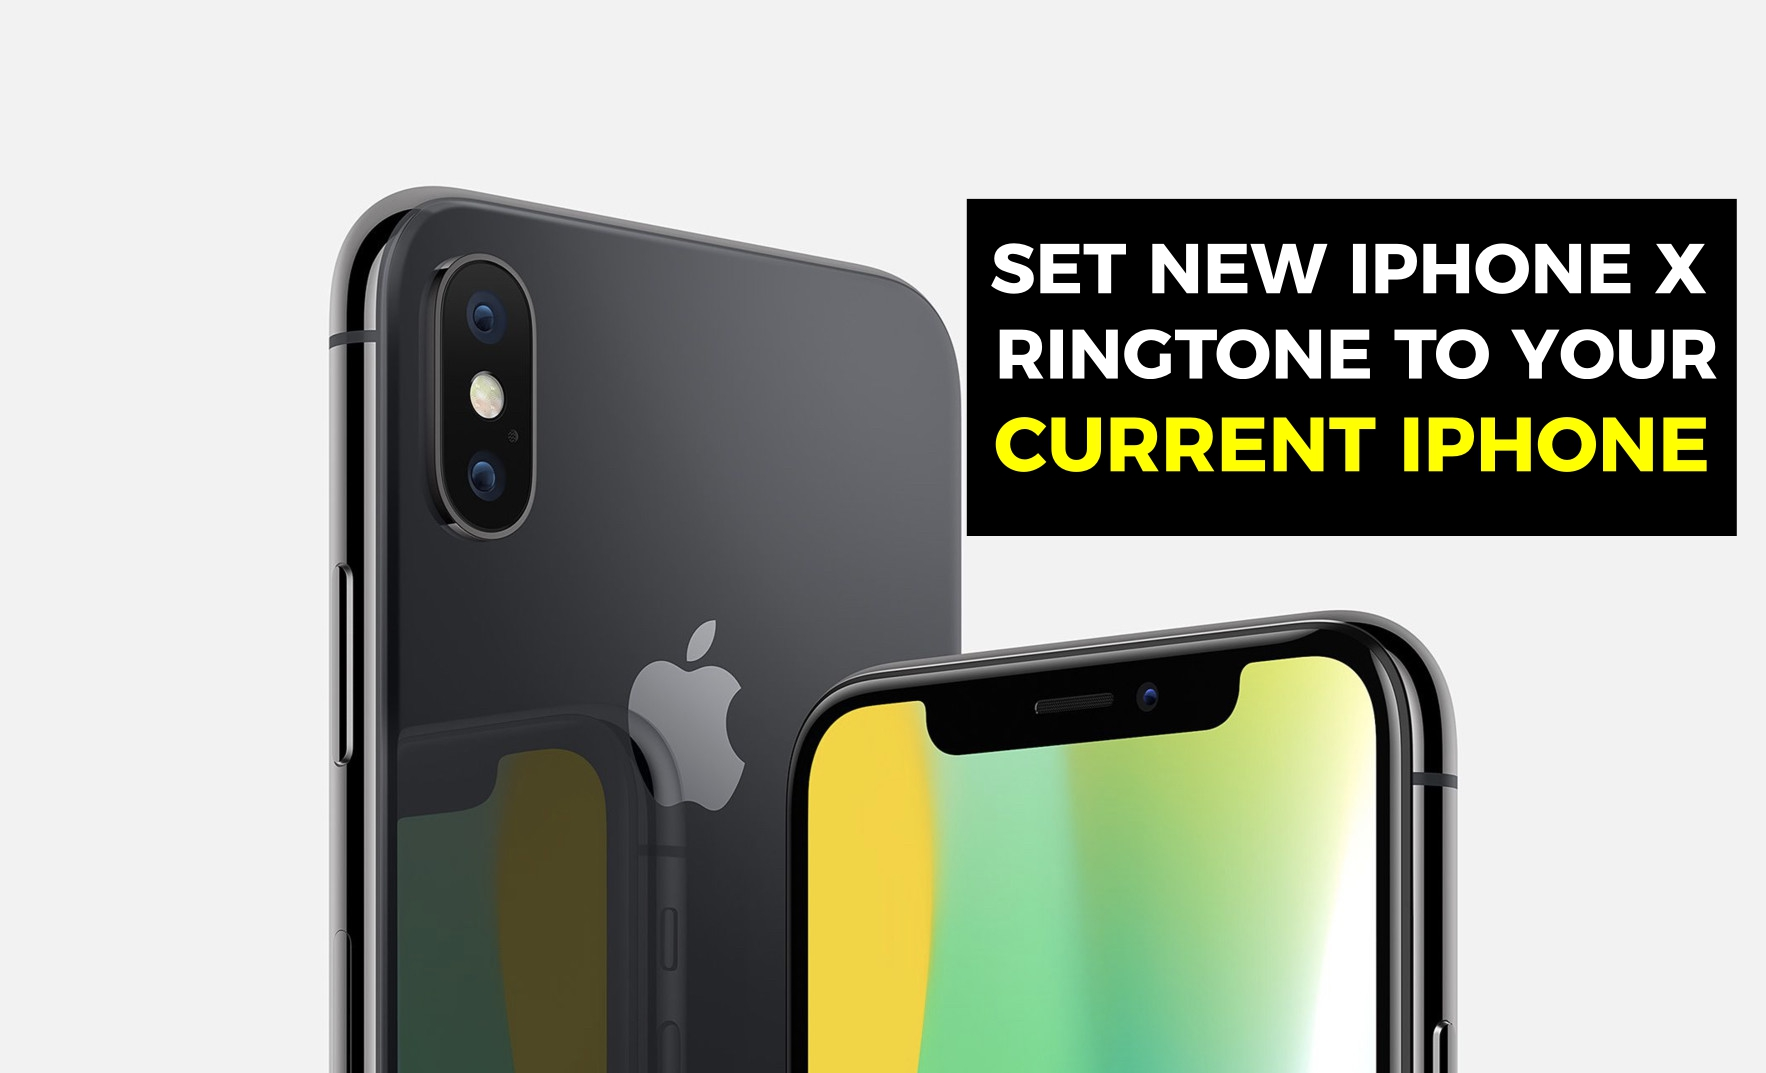 set-new-iphone-x-ringtone-to-your-current-iphone-5s-6-6s-6splus-7-7s-7splus-7plus-6plus